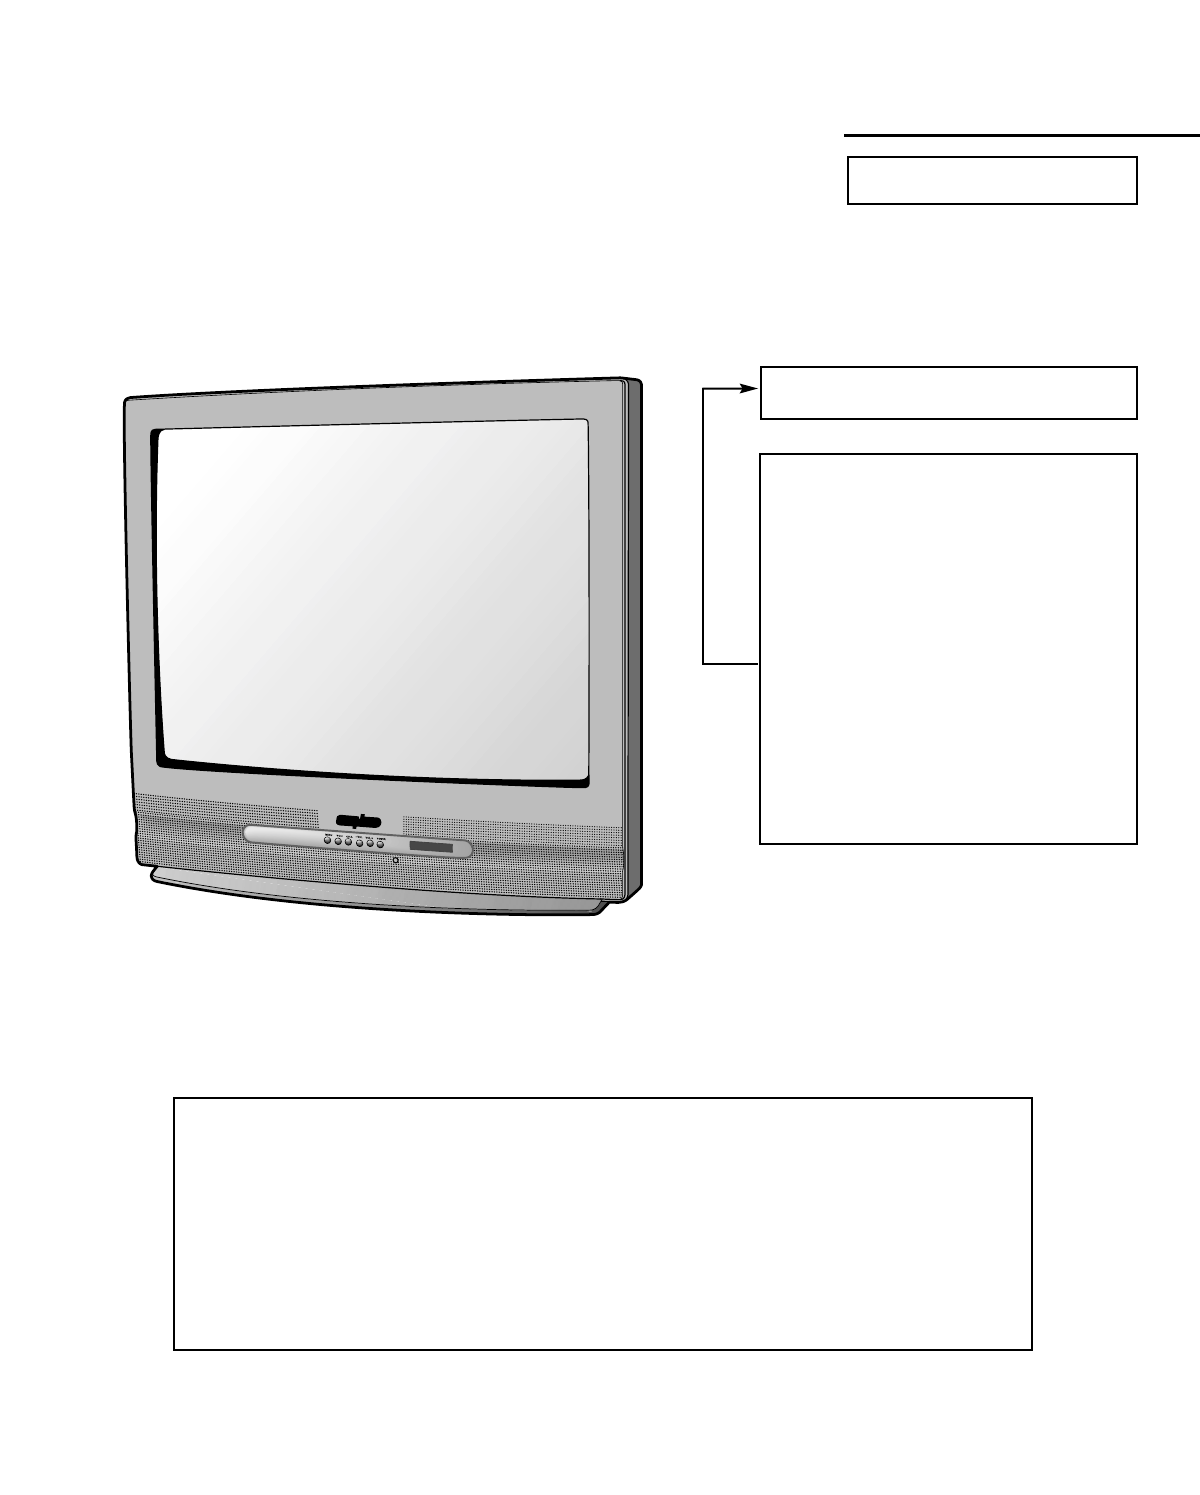 Sanyo CRT Television DS27820-02 User Guide | ManualsOnline com